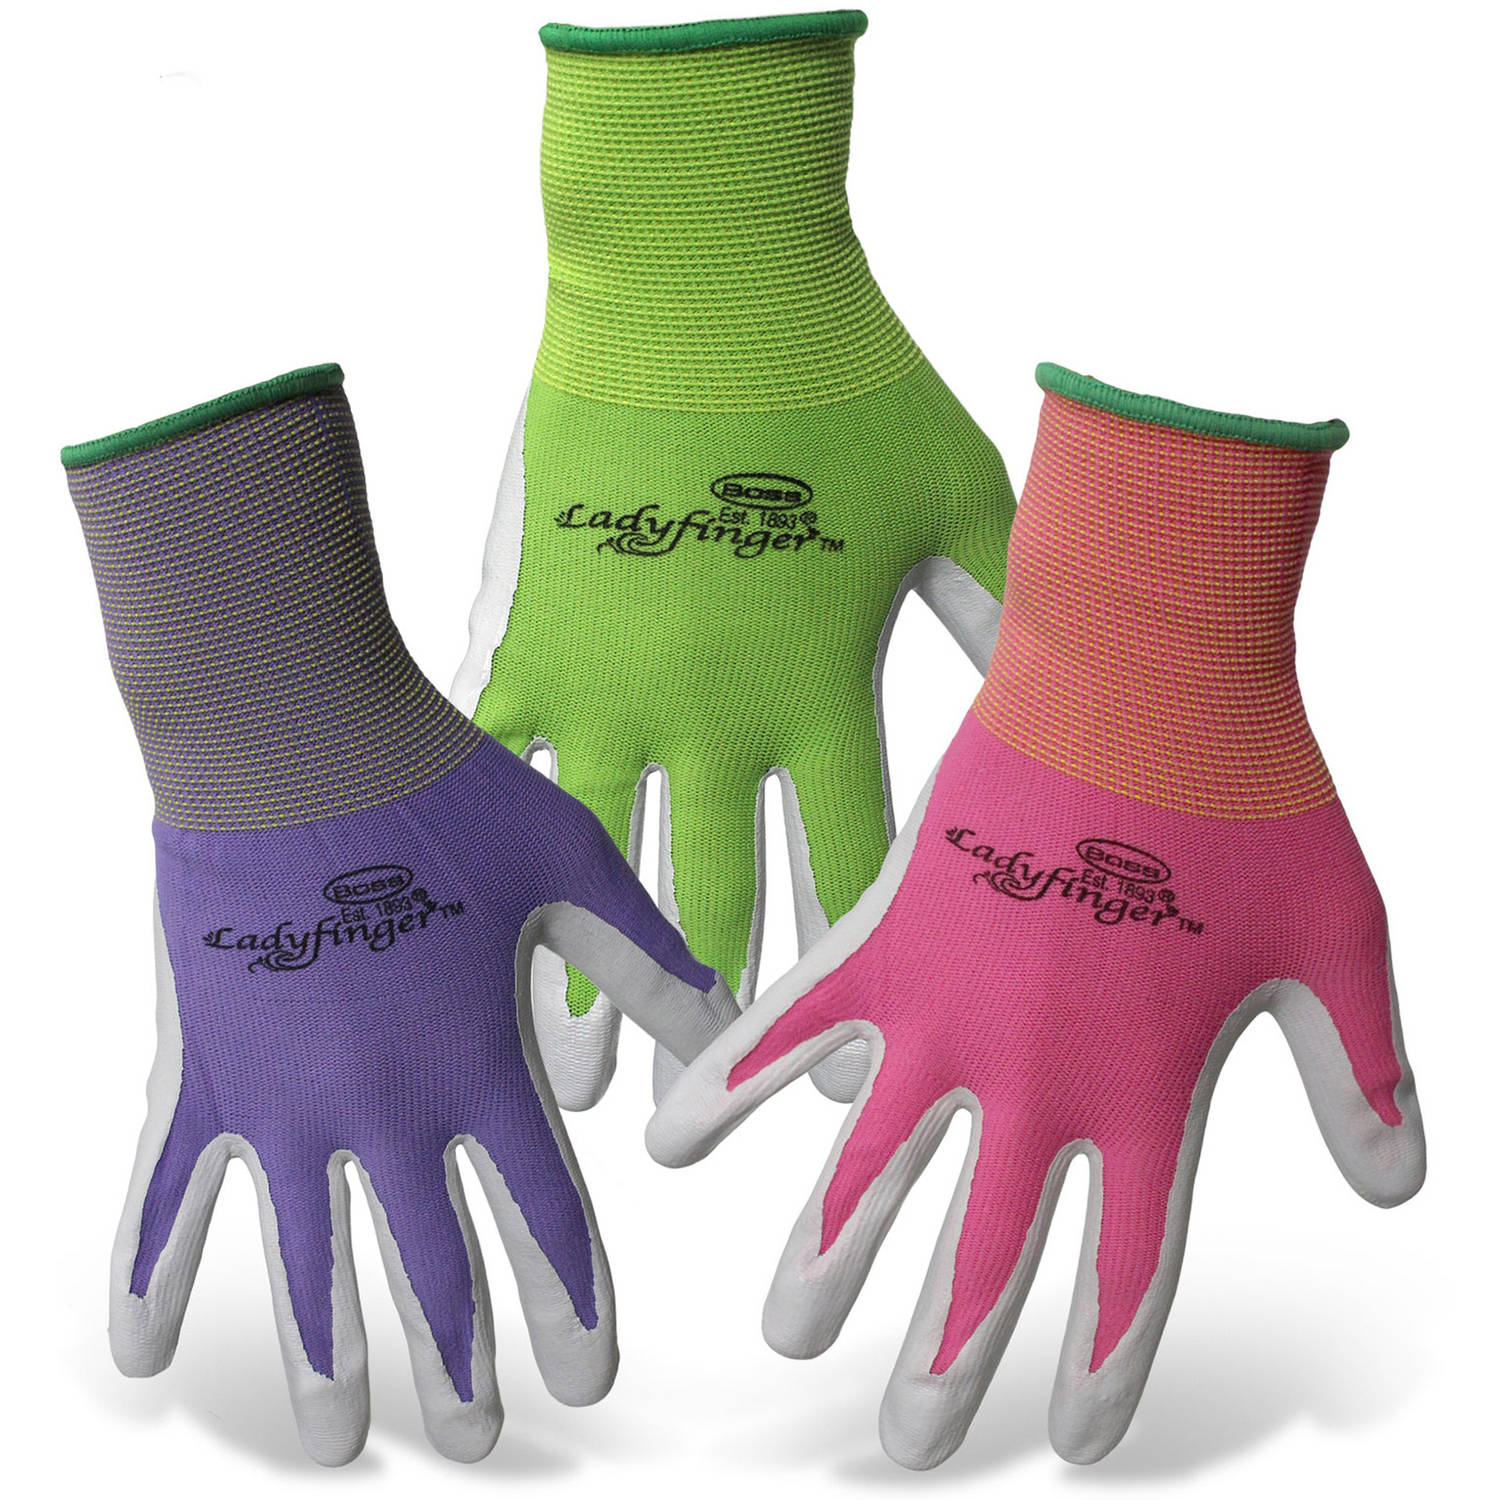 Boss Gloves 8438S Small LadyFinger Women's Nitrile Palm Gloves Asst Colors